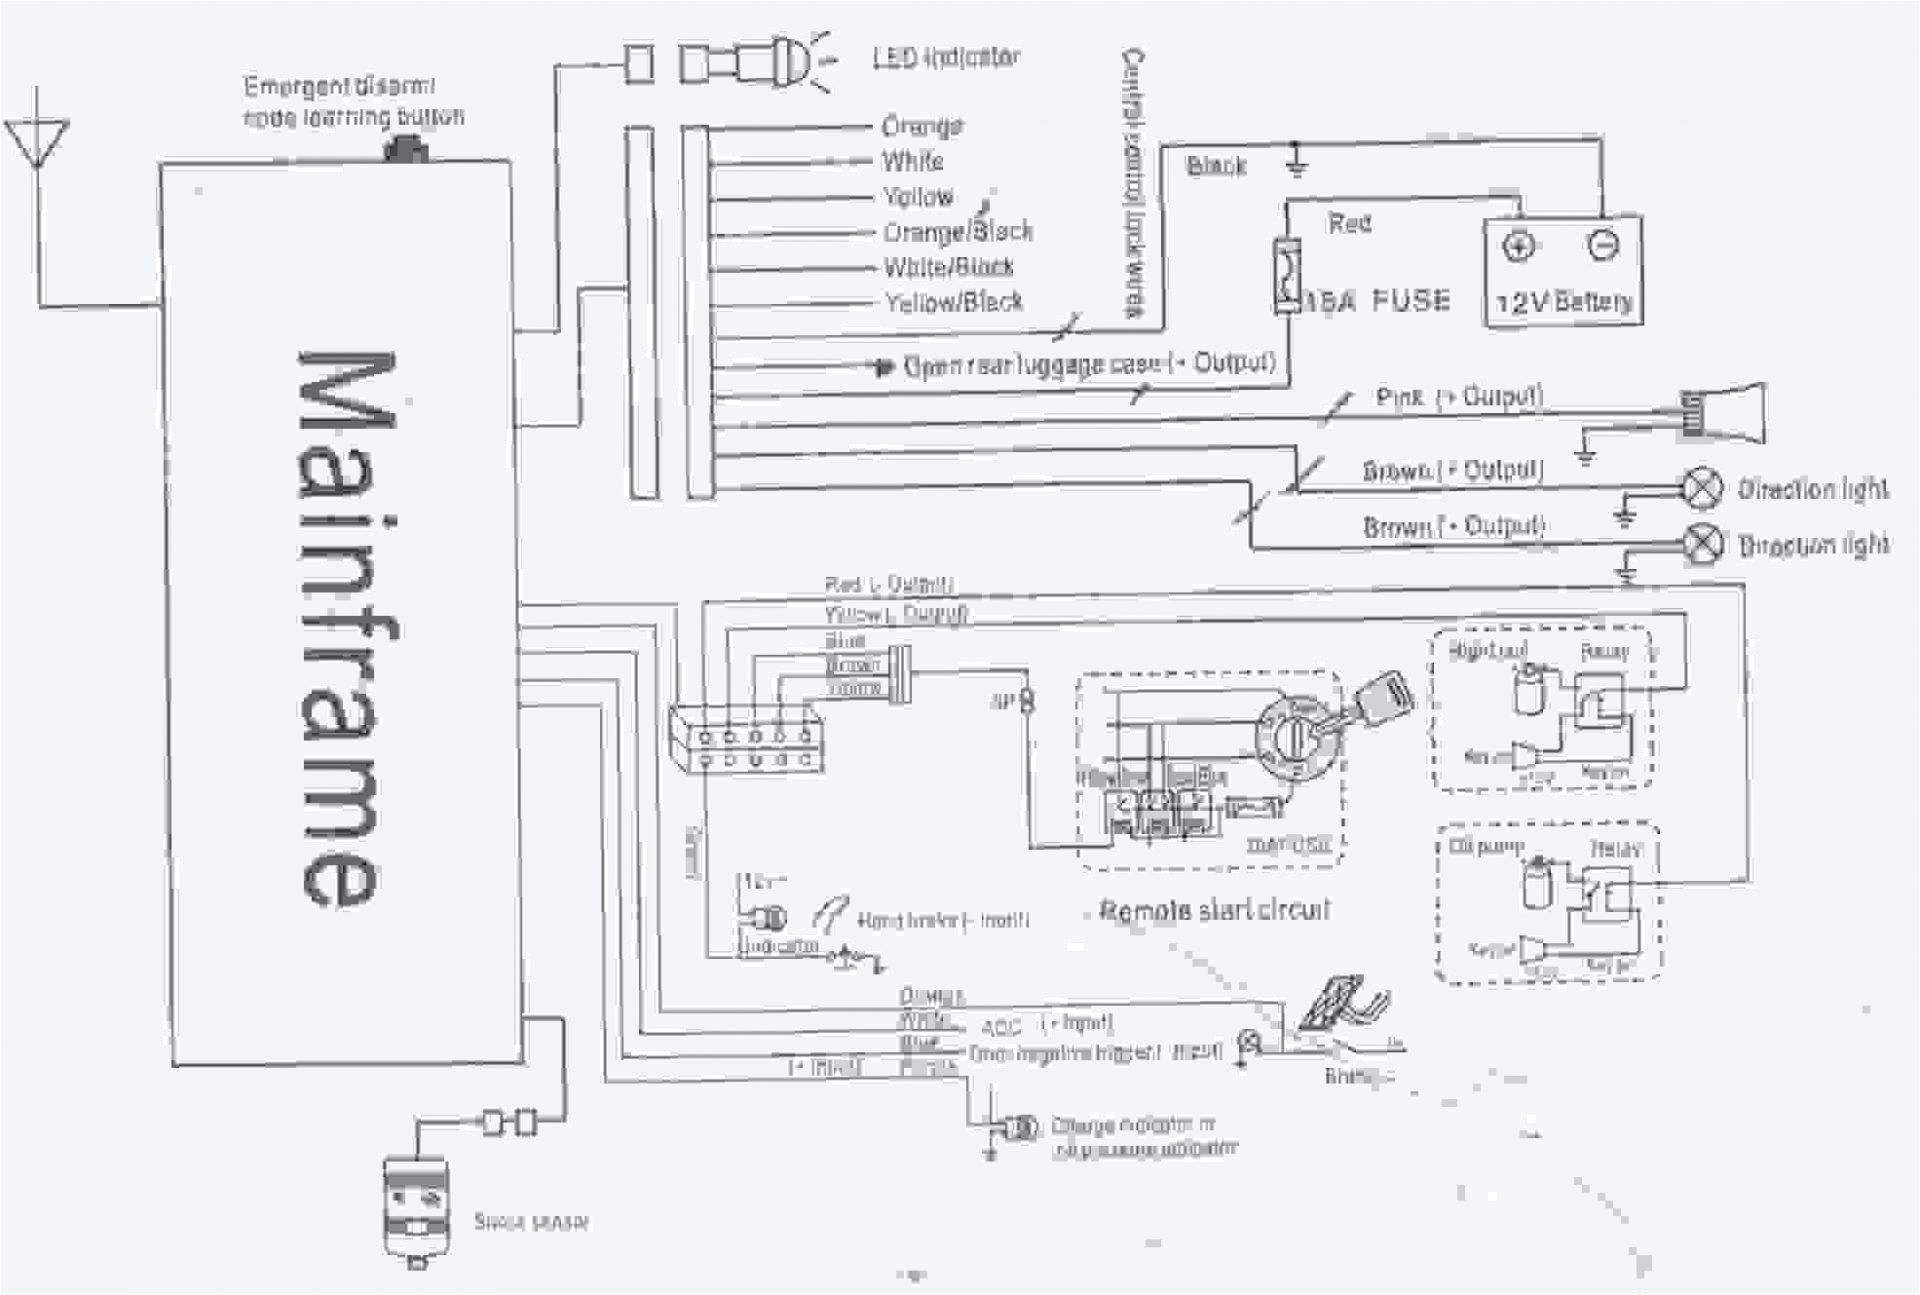 Security System Wiring Diagram